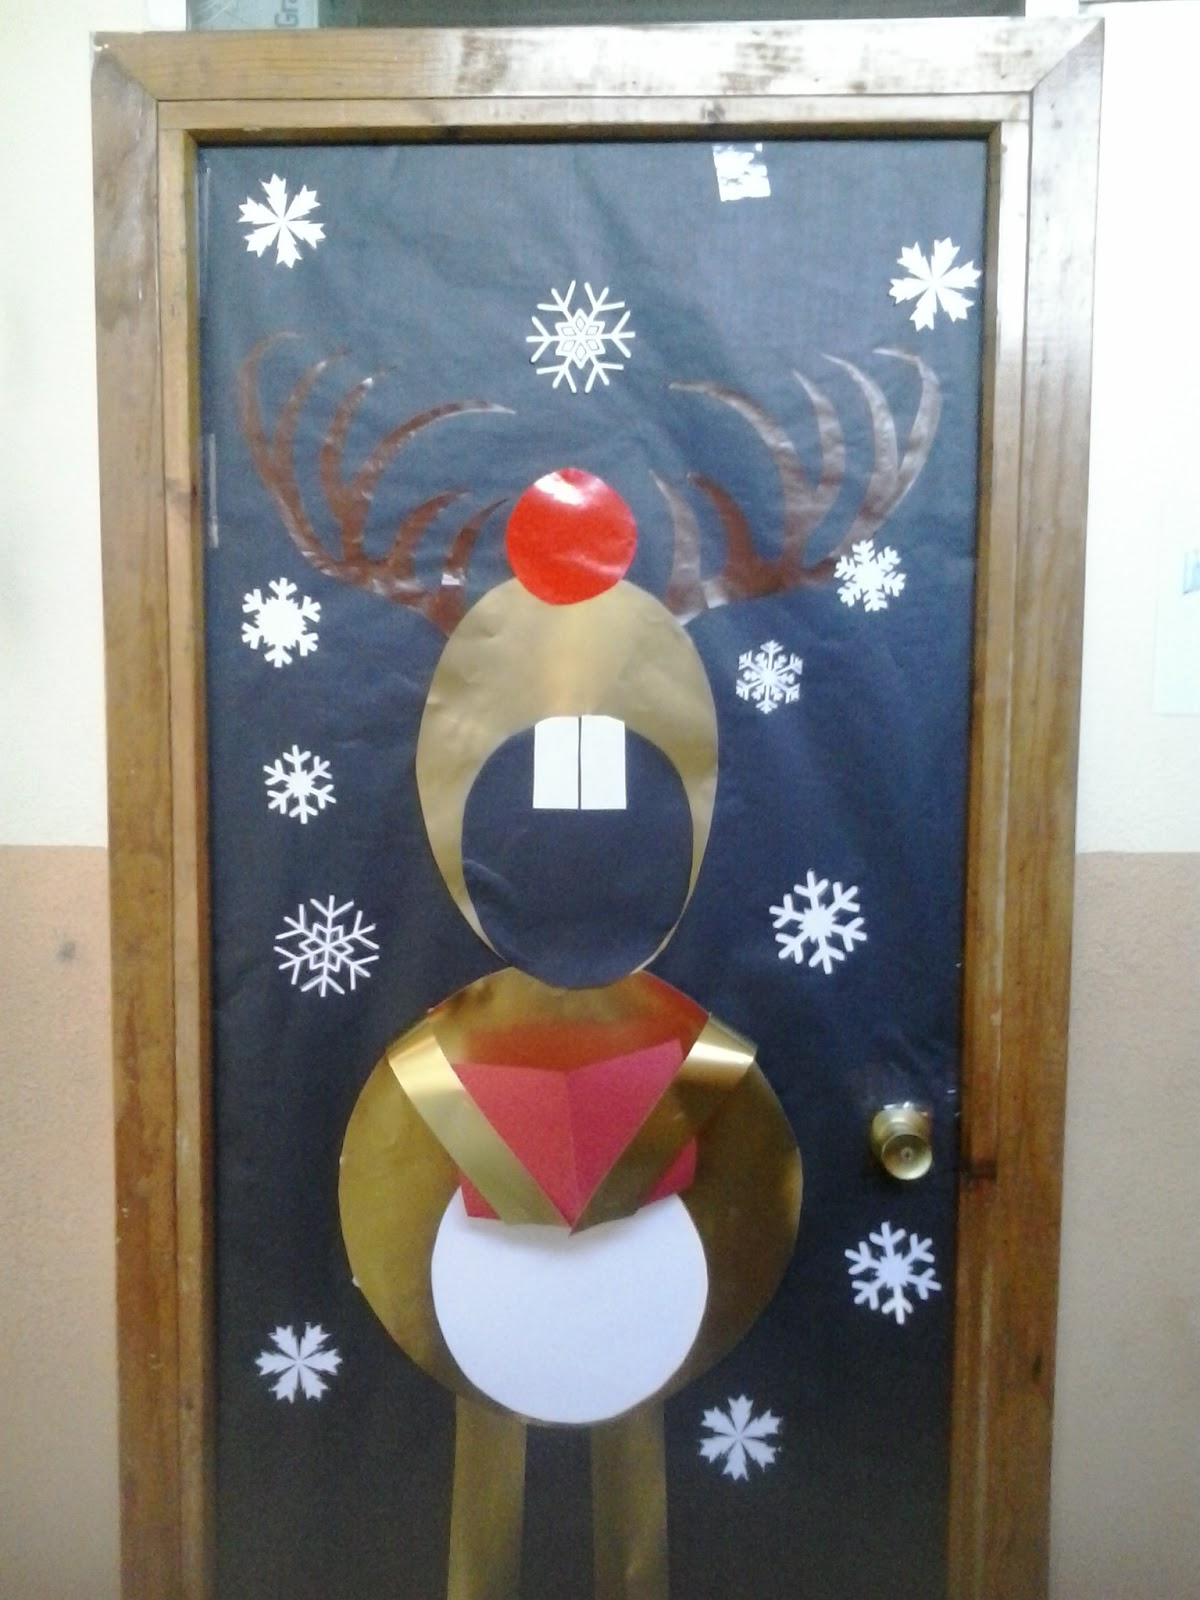 This Is What Our School Doors Looked Like.